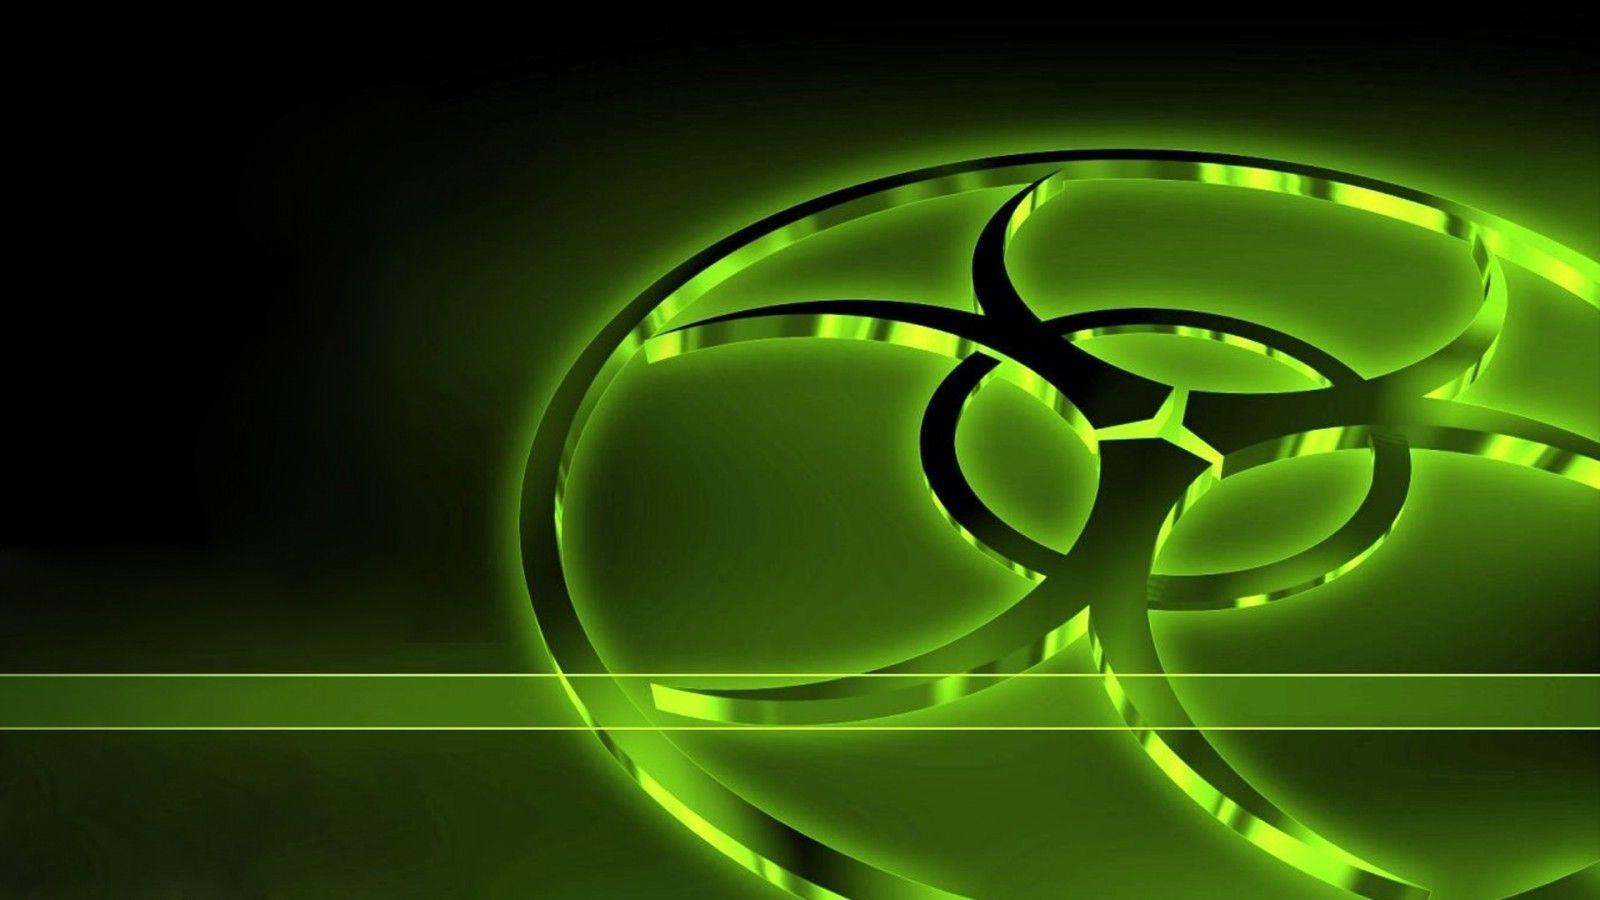 Black And Green Backgrounds - Wallpaper CaveBlack And Lime Green Backgrounds